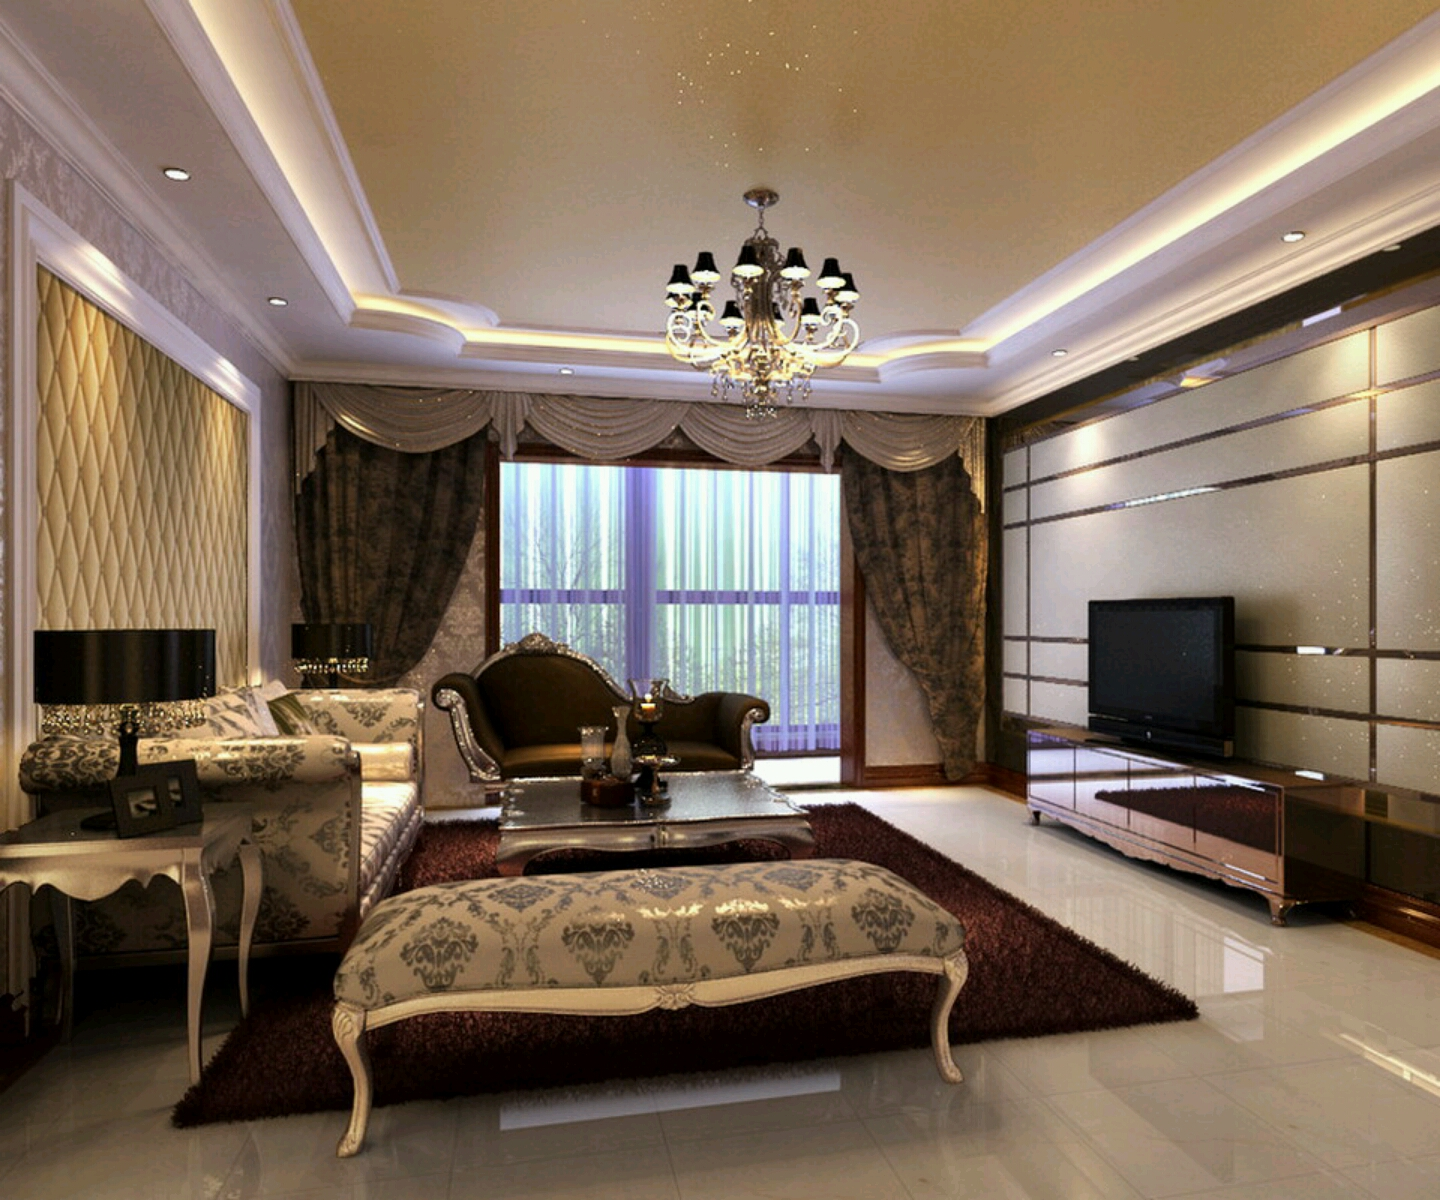 New home designs latest luxury homes interior decoration for Internal design ideas